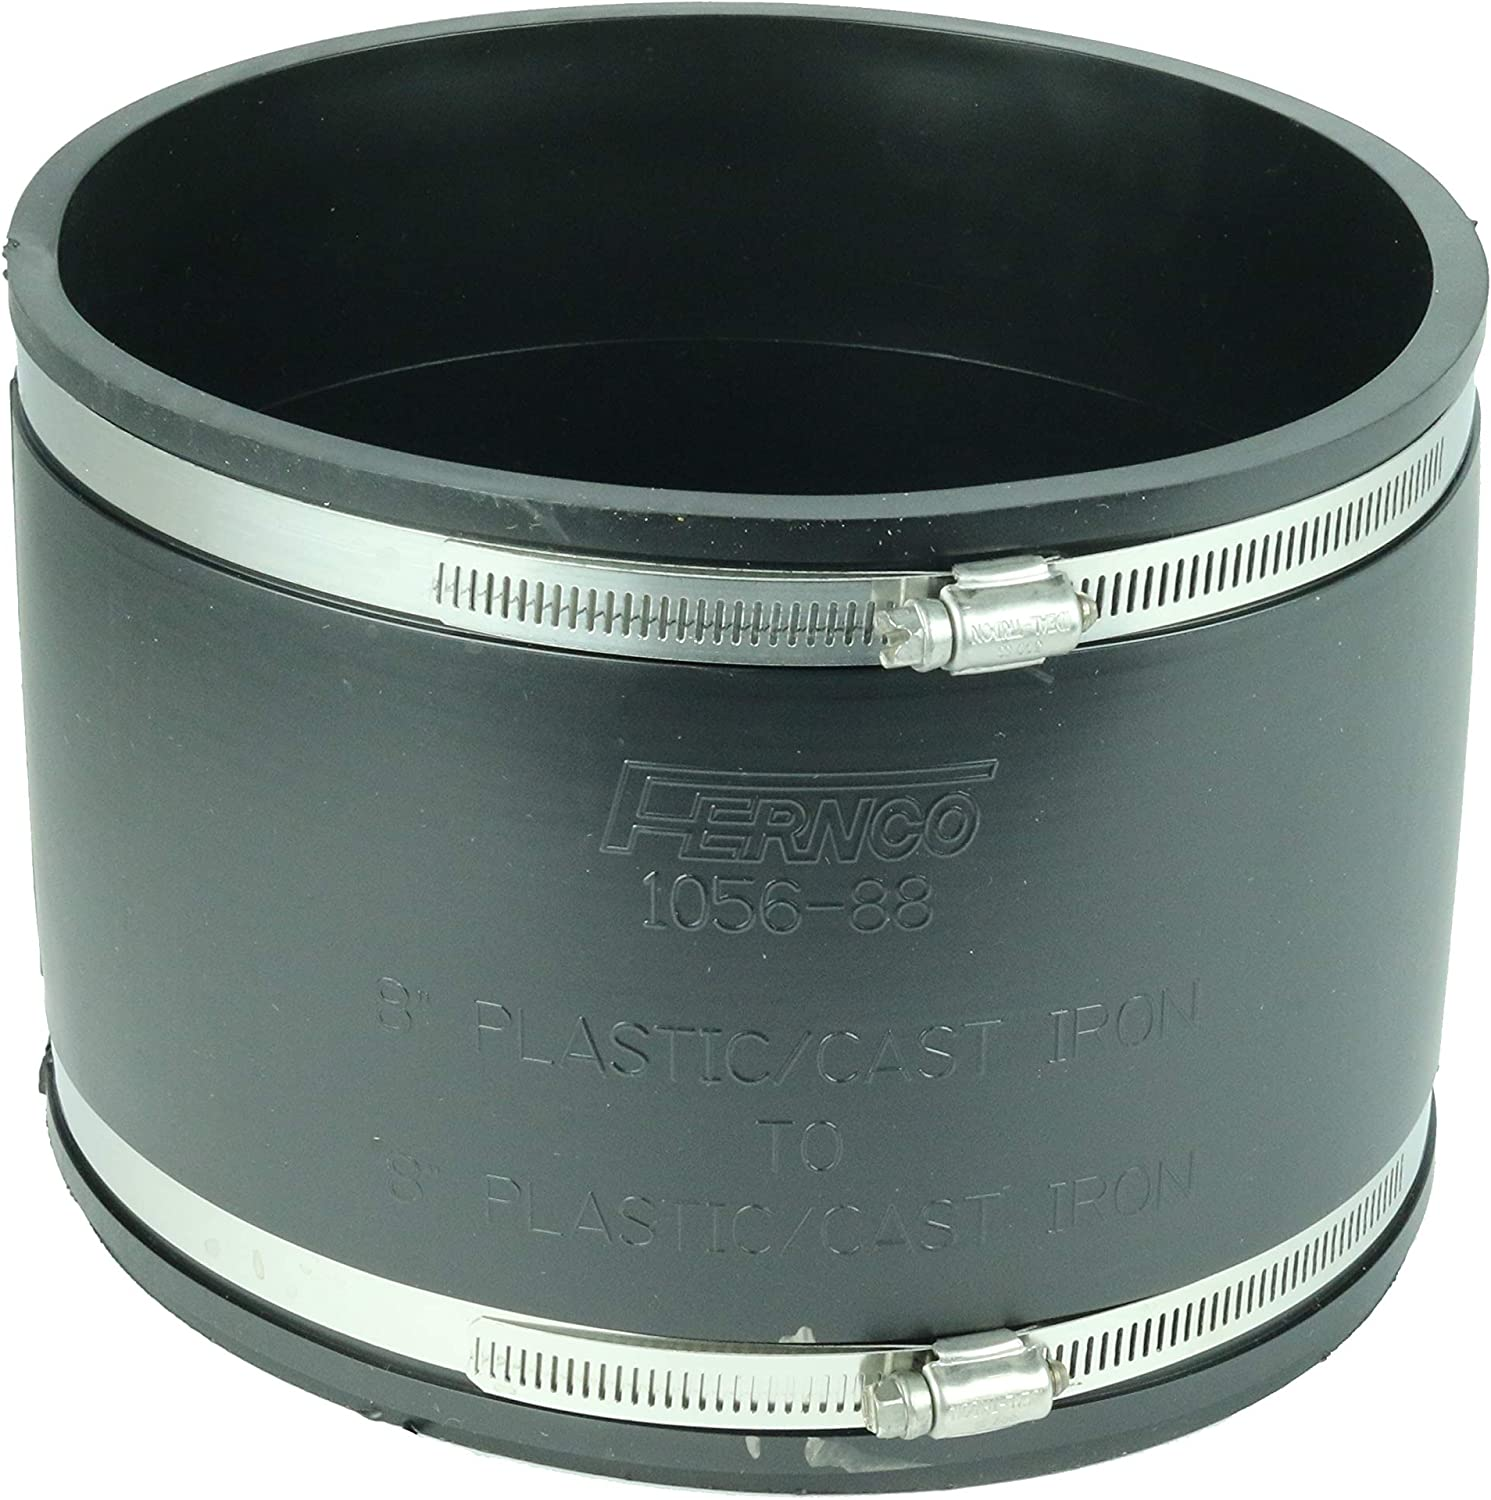 """Fernco 8"""" x 8"""" Flexible Coupling 1056-88 (Cl and Plastic to Cl and plastic)"""